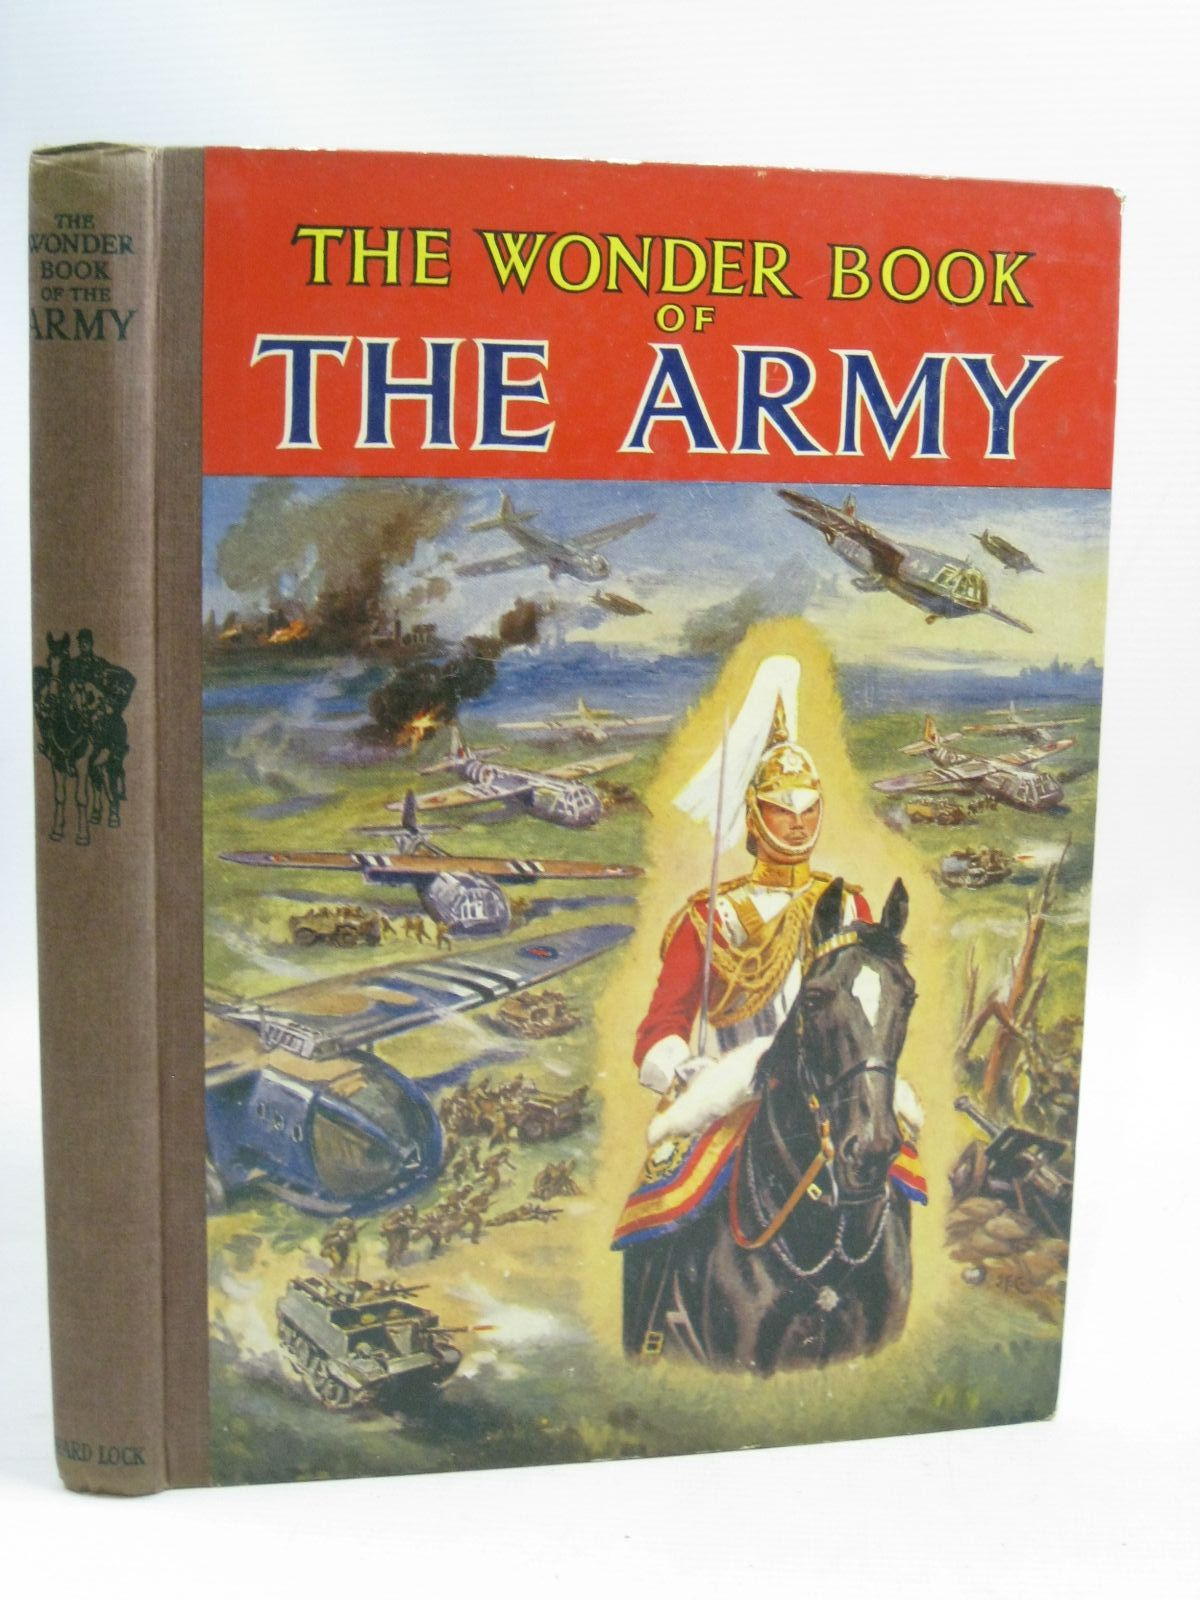 Photo of THE WONDER BOOK OF THE ARMY published by Ward, Lock & Co. Ltd. (STOCK CODE: 1405381)  for sale by Stella & Rose's Books